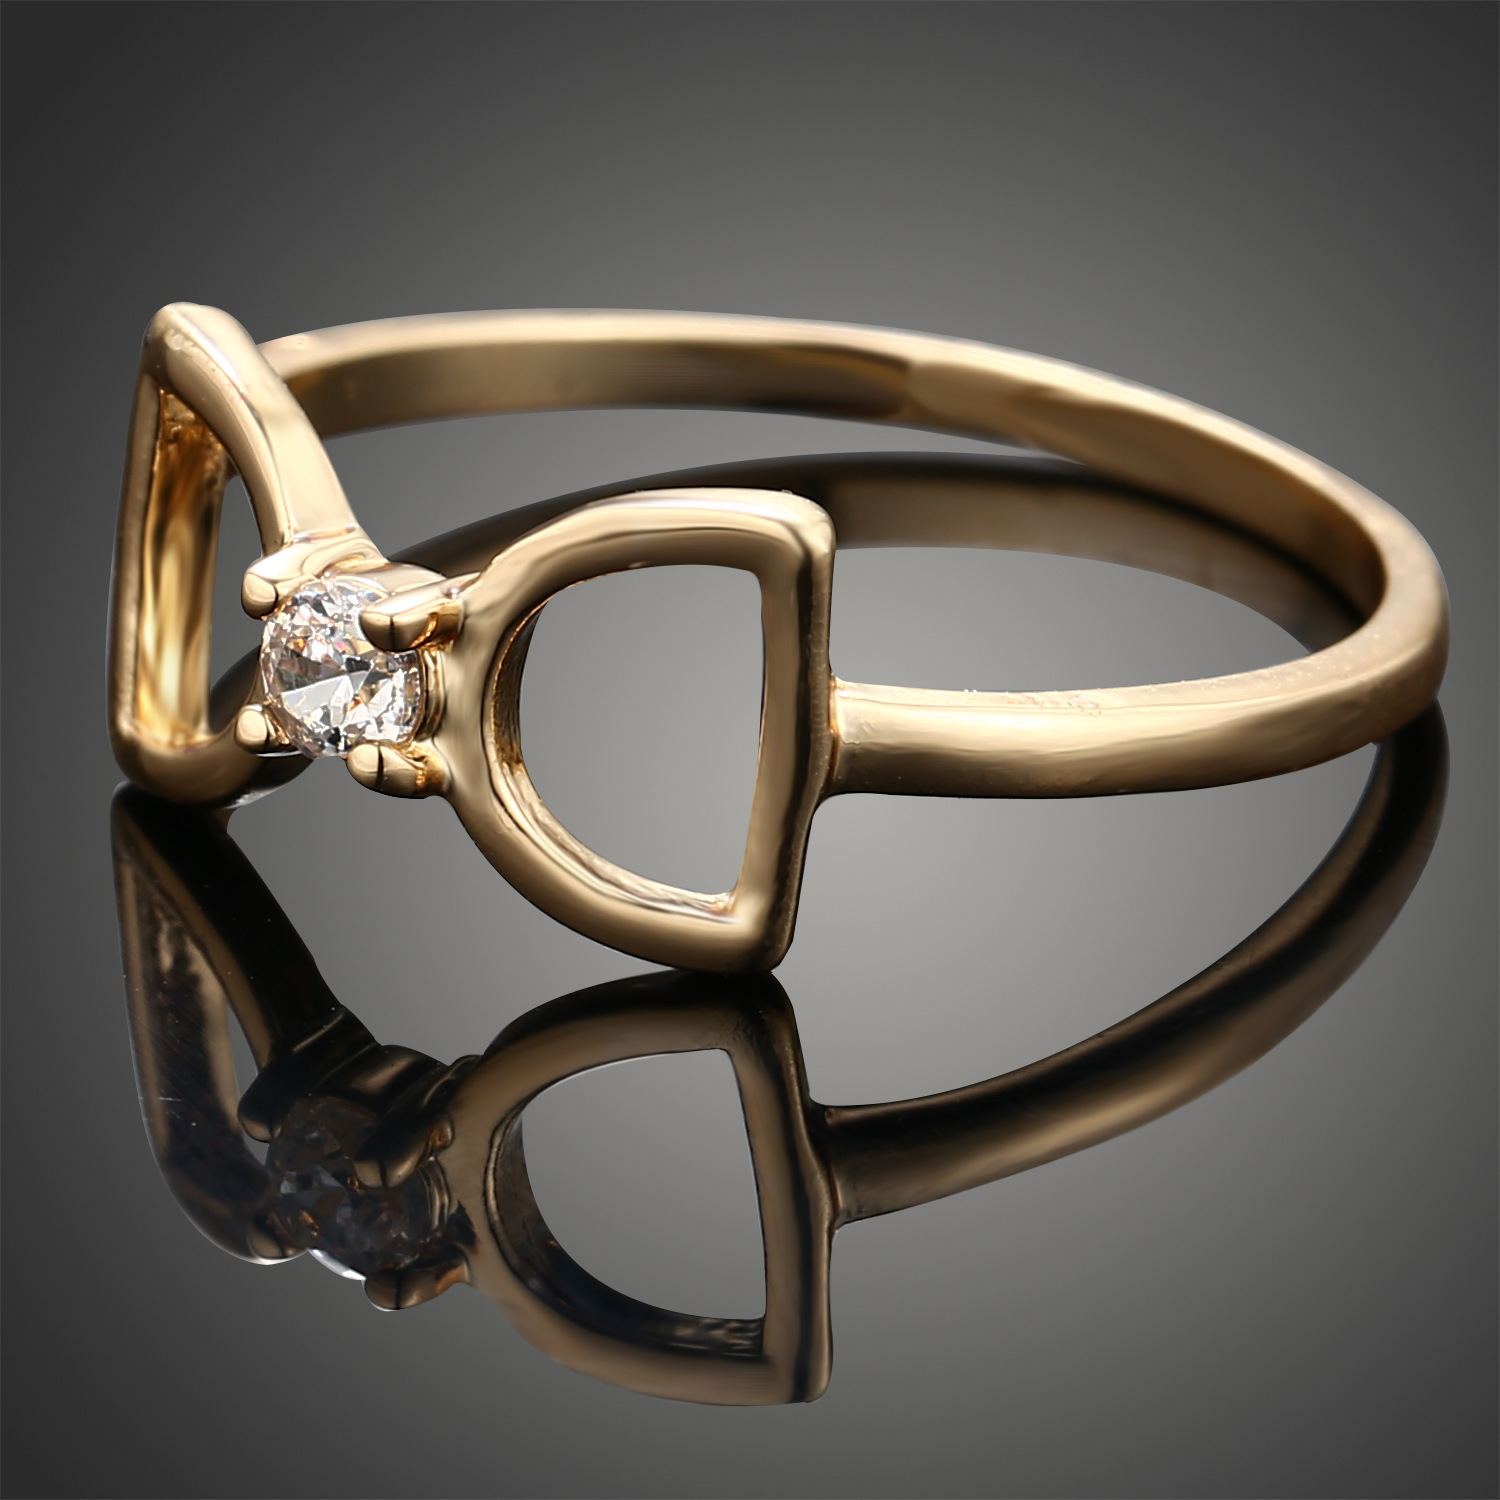 wedding ring gold engagement o rings facebook unique korea korean